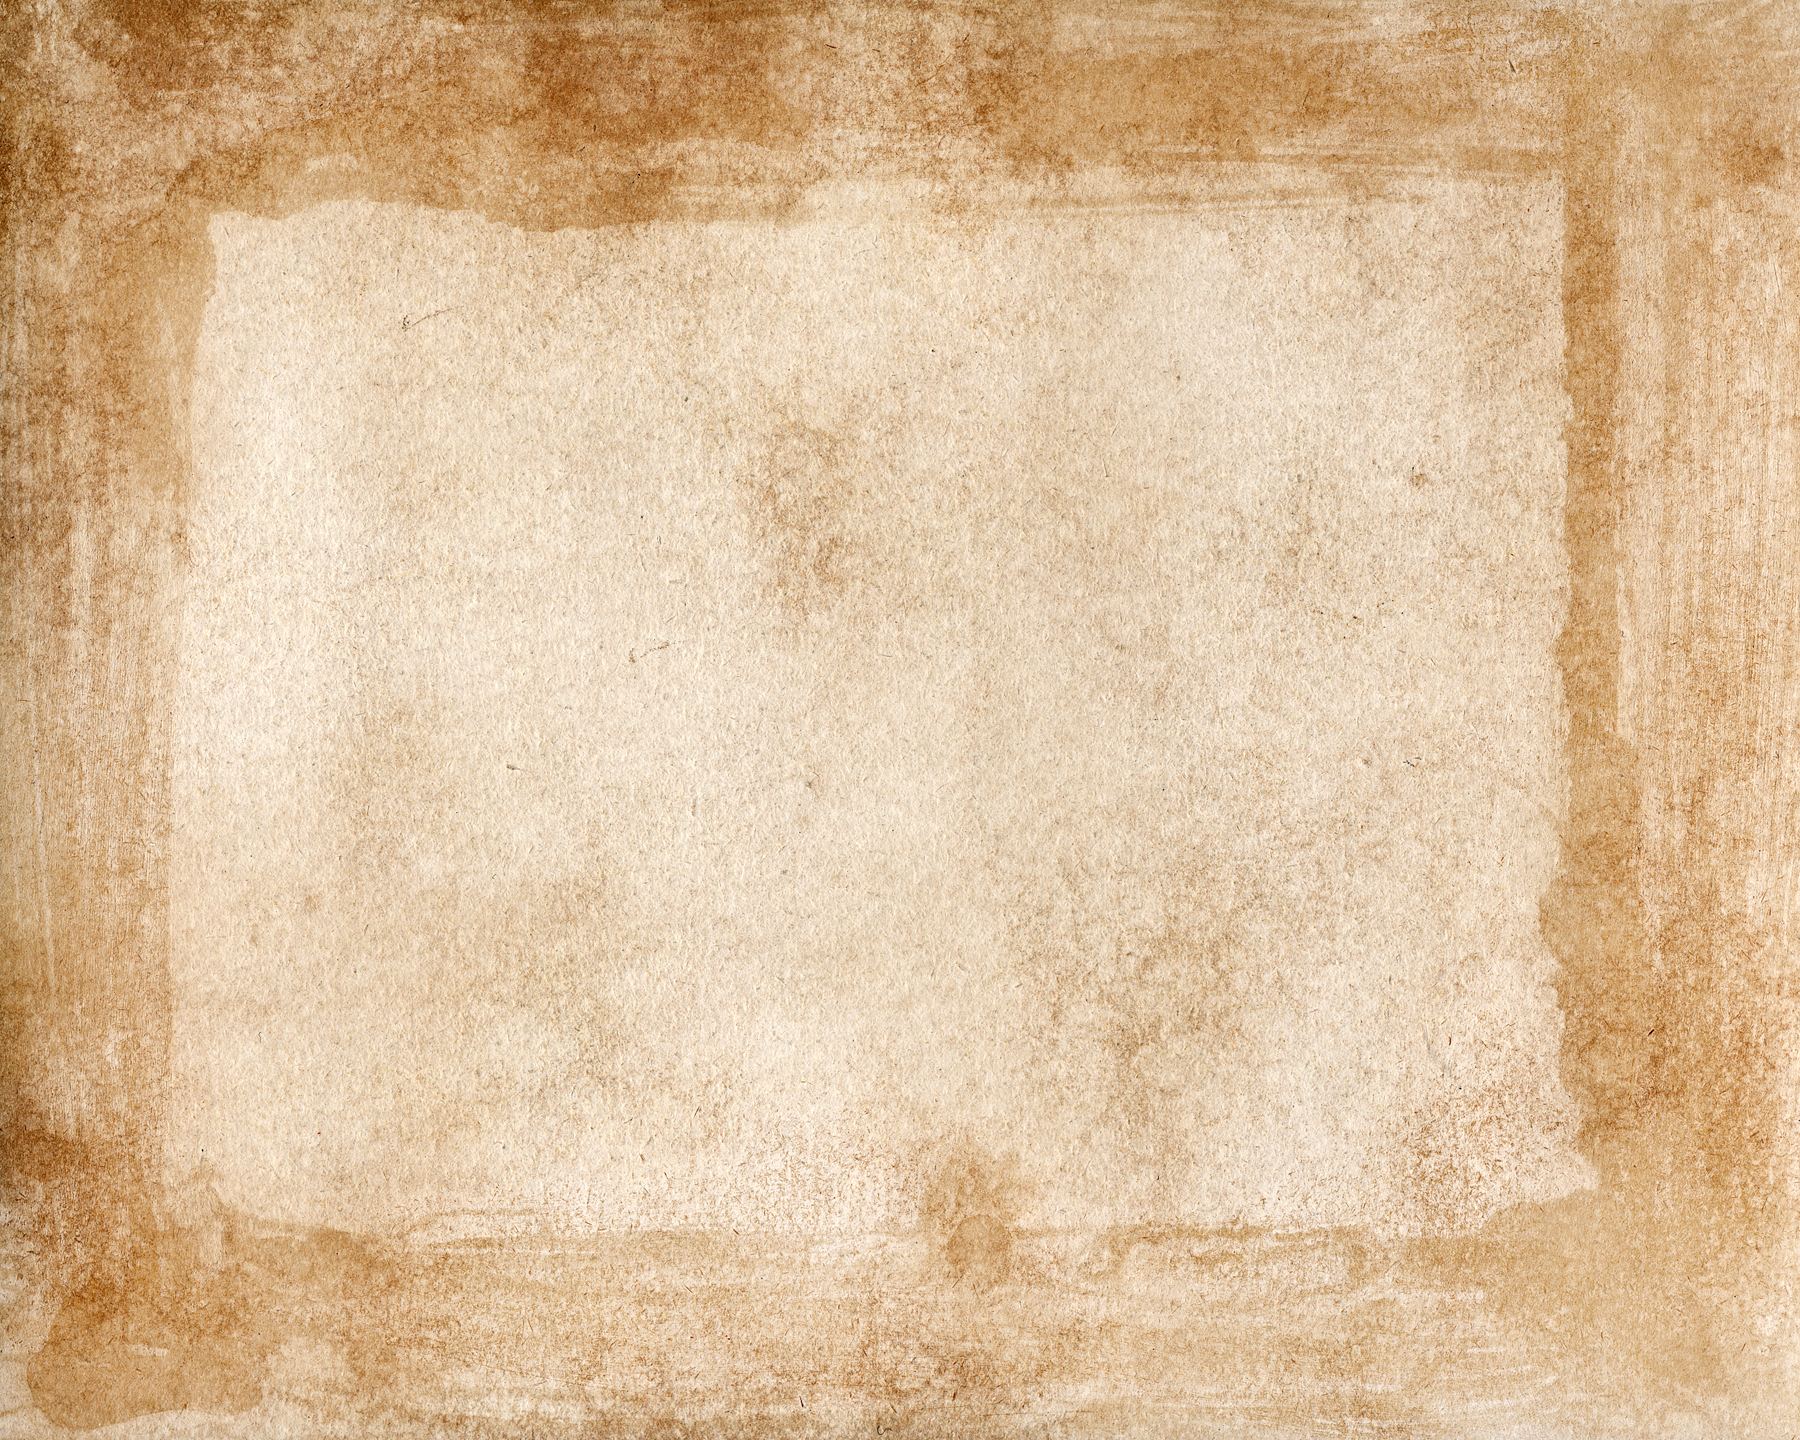 Glue Stained Paper Texture, Age, Resolution, Scrap, Scan, HQ Photo